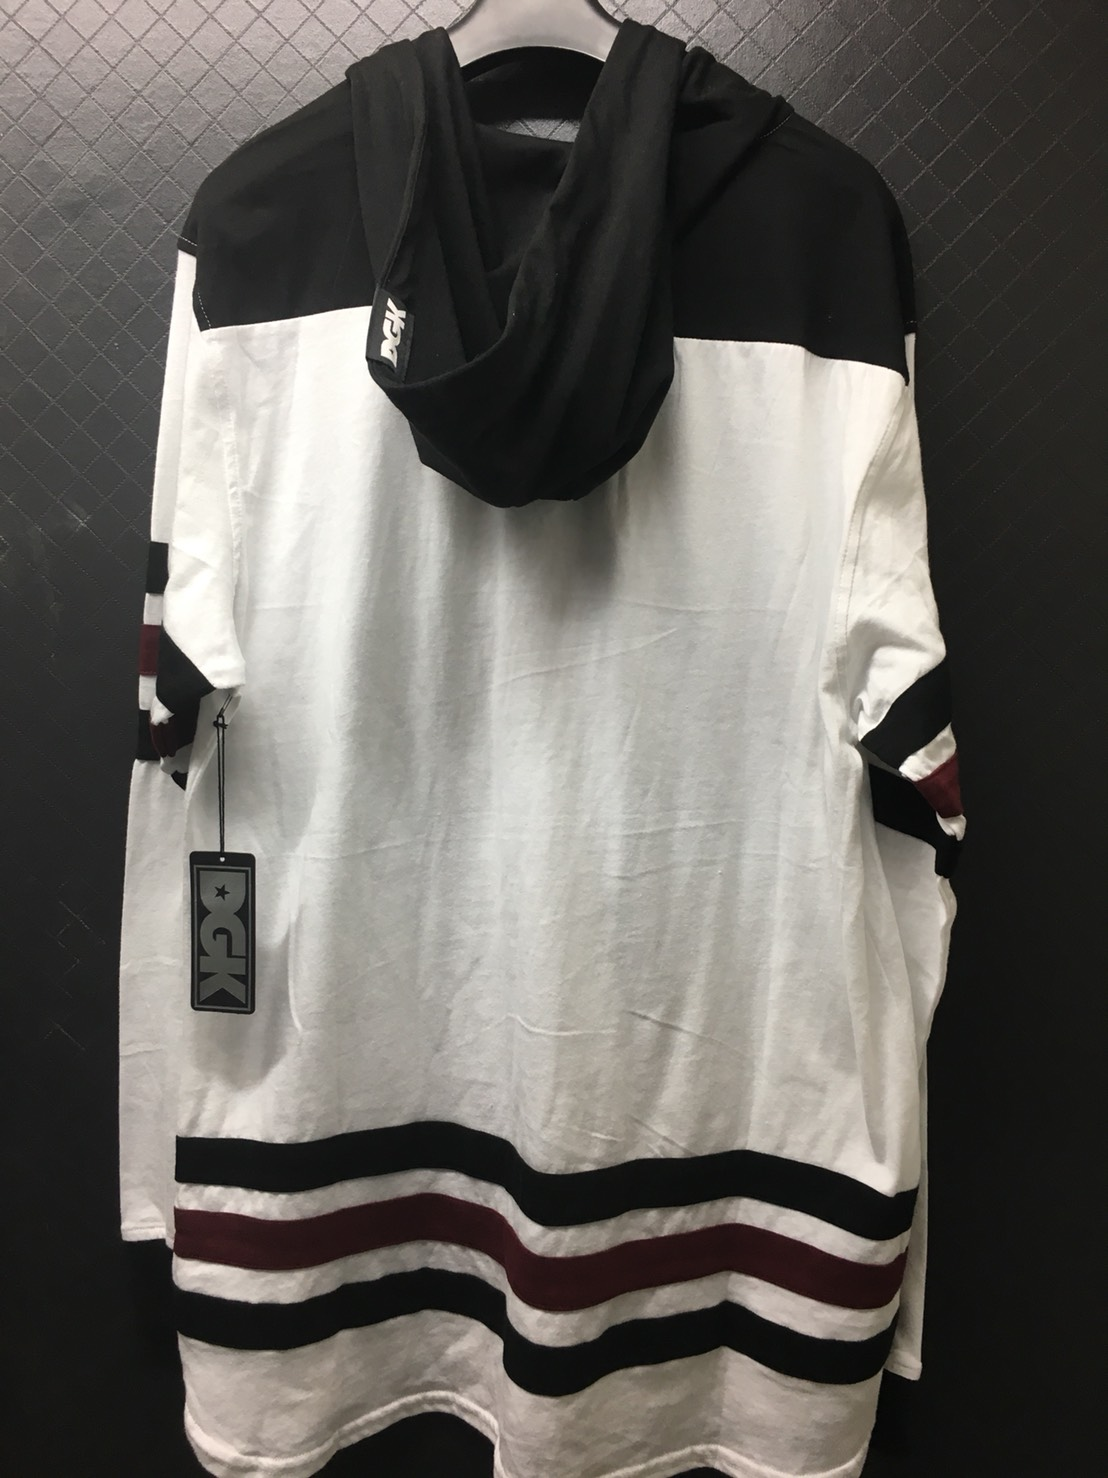 DGK Penalty White, Black & Burgundy Hooded Long Sleeve T